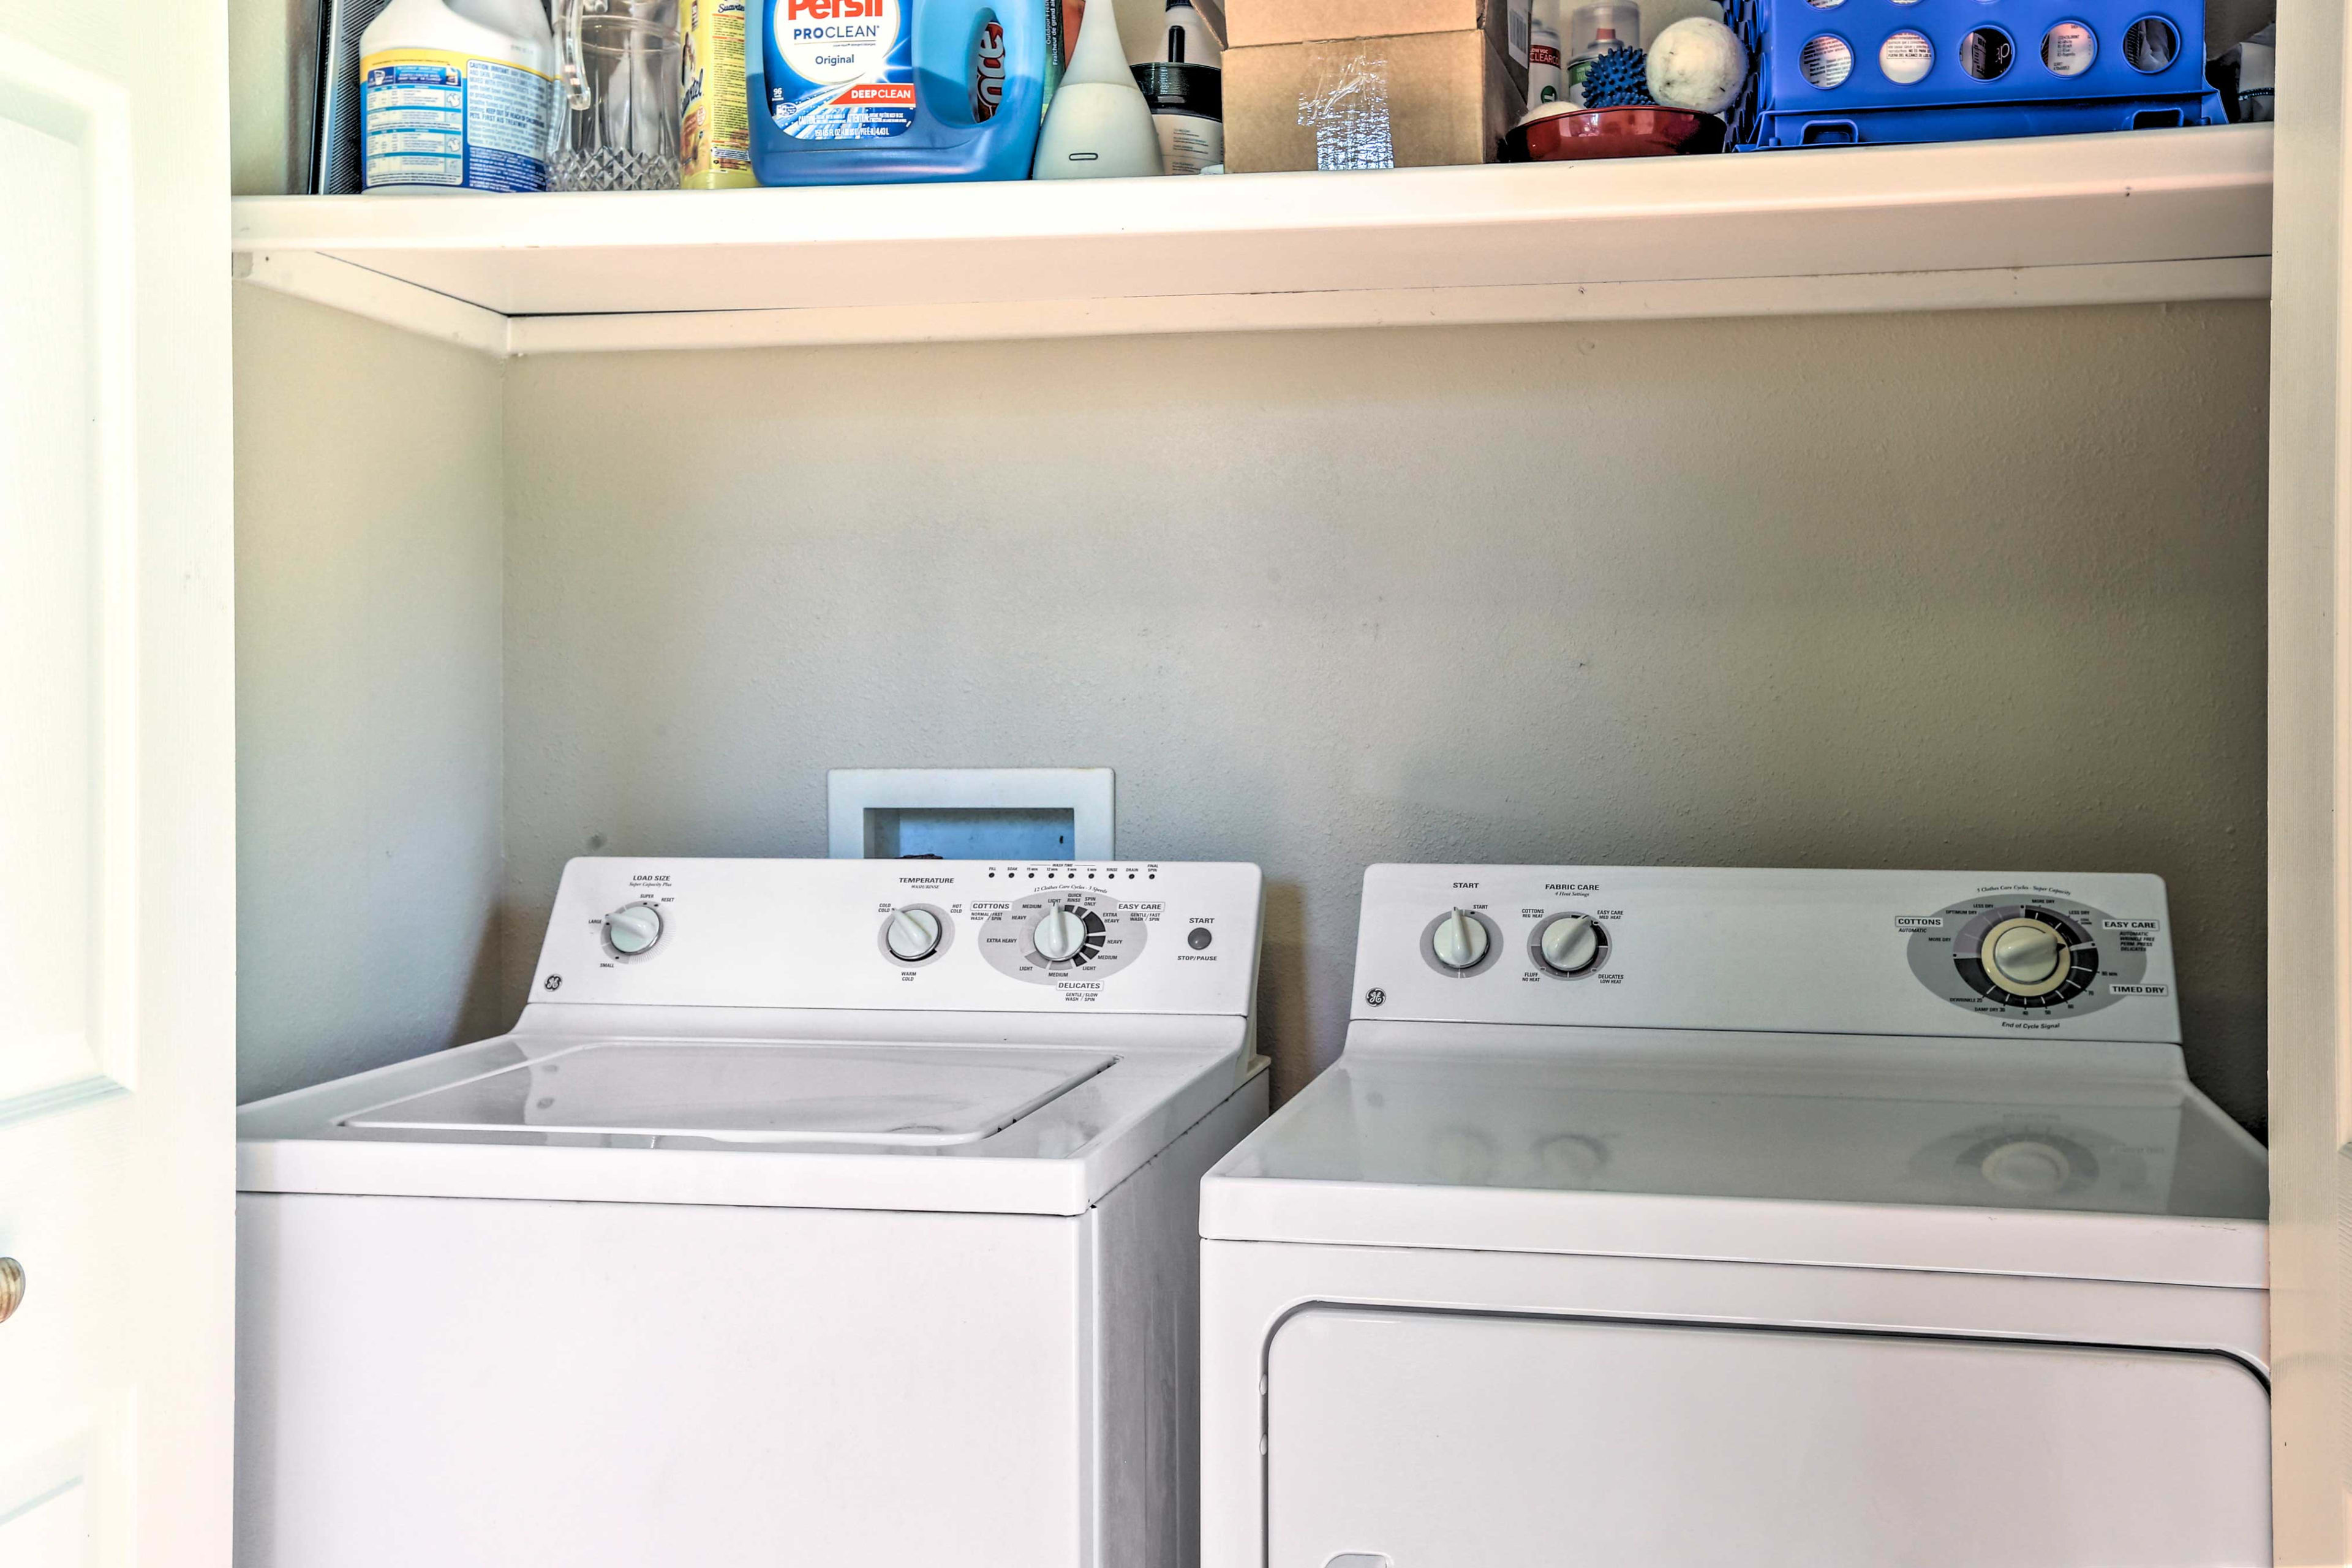 Laundry machines allow guests to keep their wardrobe fresh & clean.